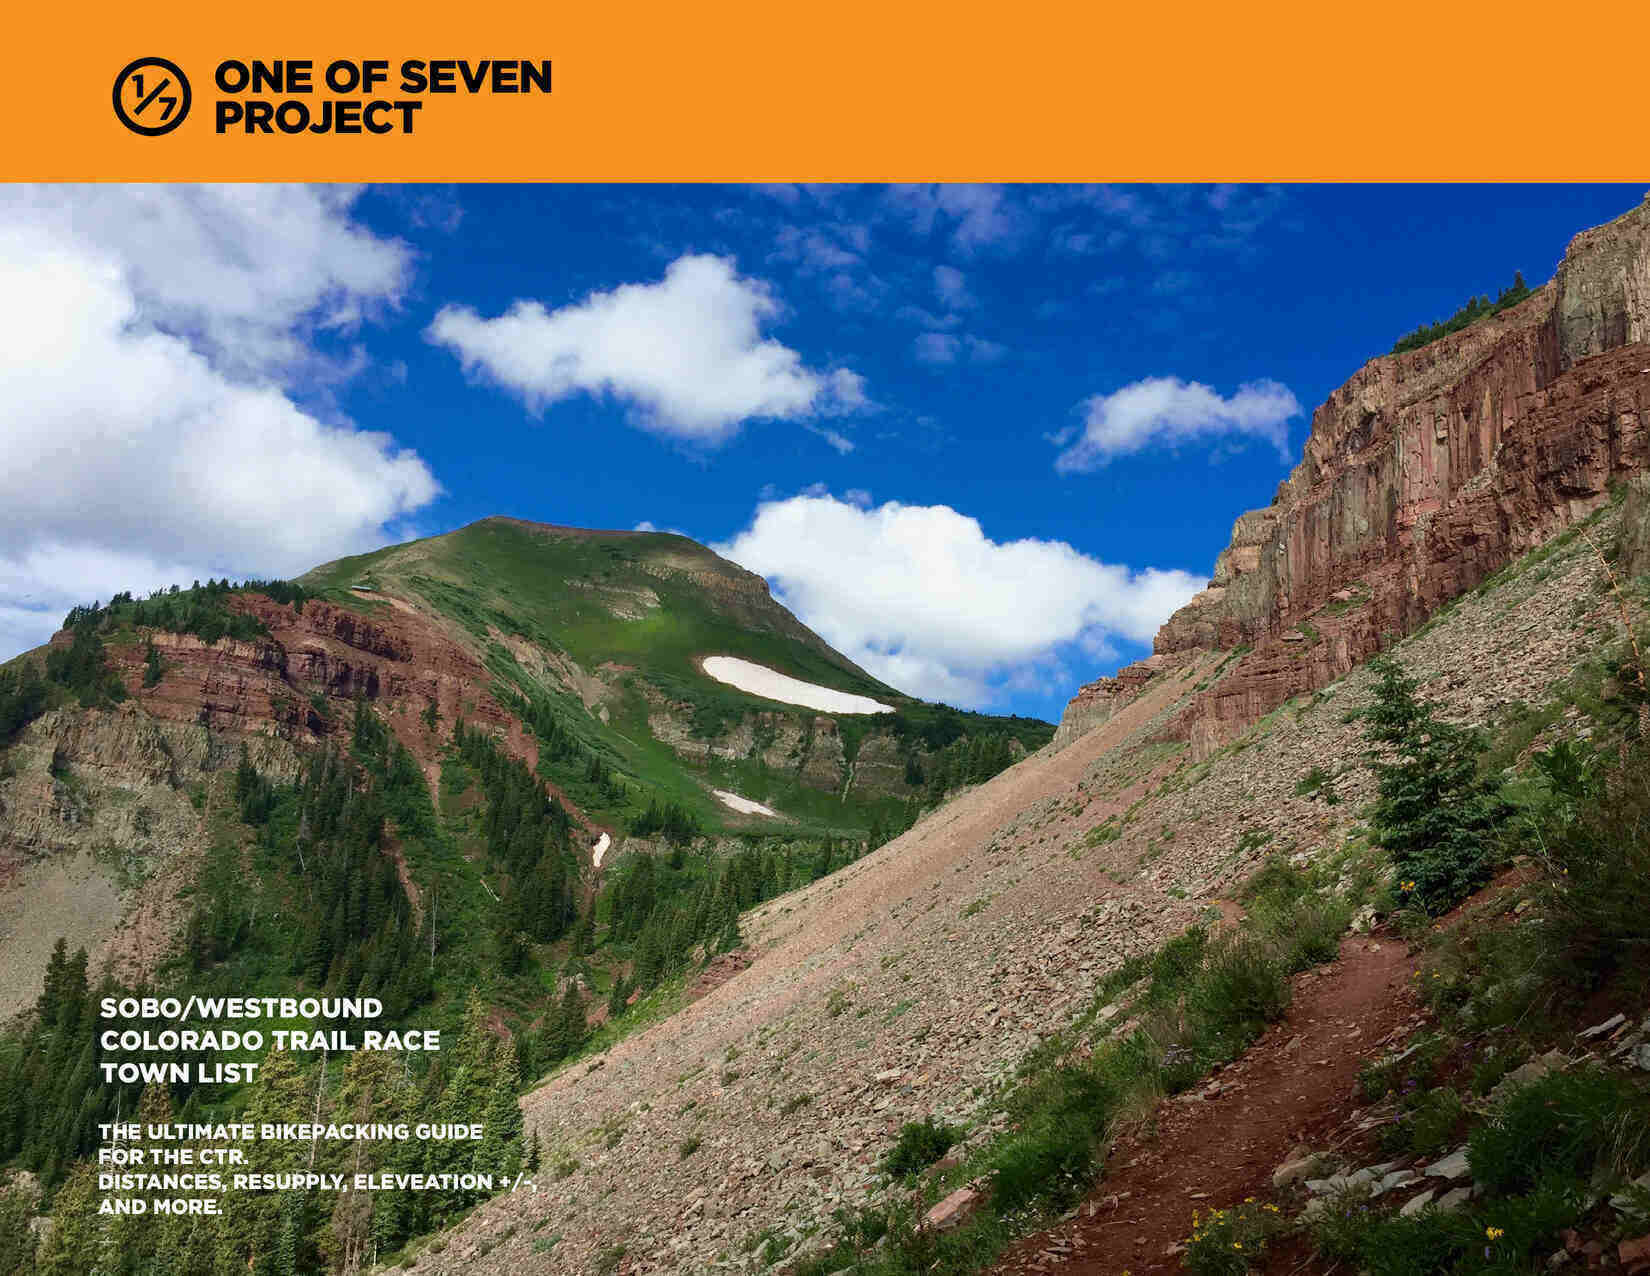 2021 Colorado Trail Race SOBO Town List Cover bikepacking guide planning aid